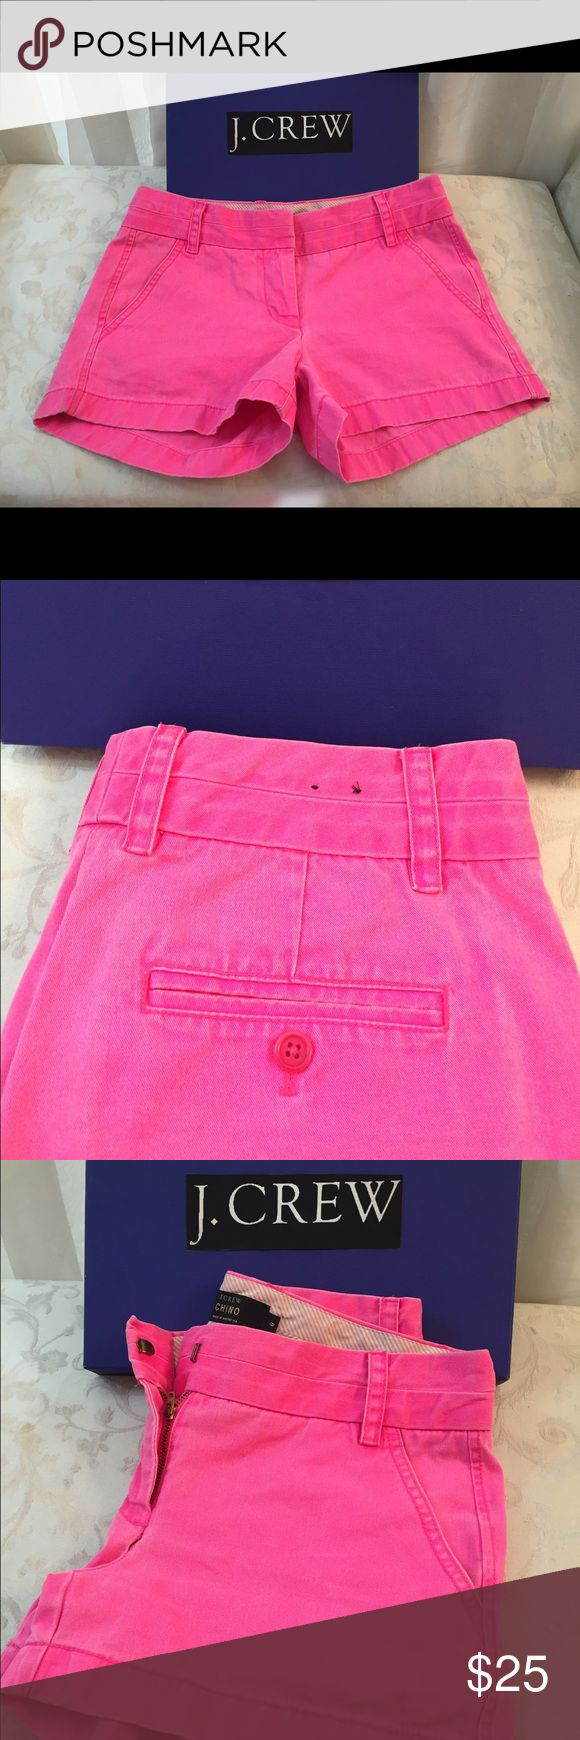 """J Crew """"Chino """" short J crew shot, hot pink, very cute, new condition, never used. j crew Shorts Jean Shorts"""